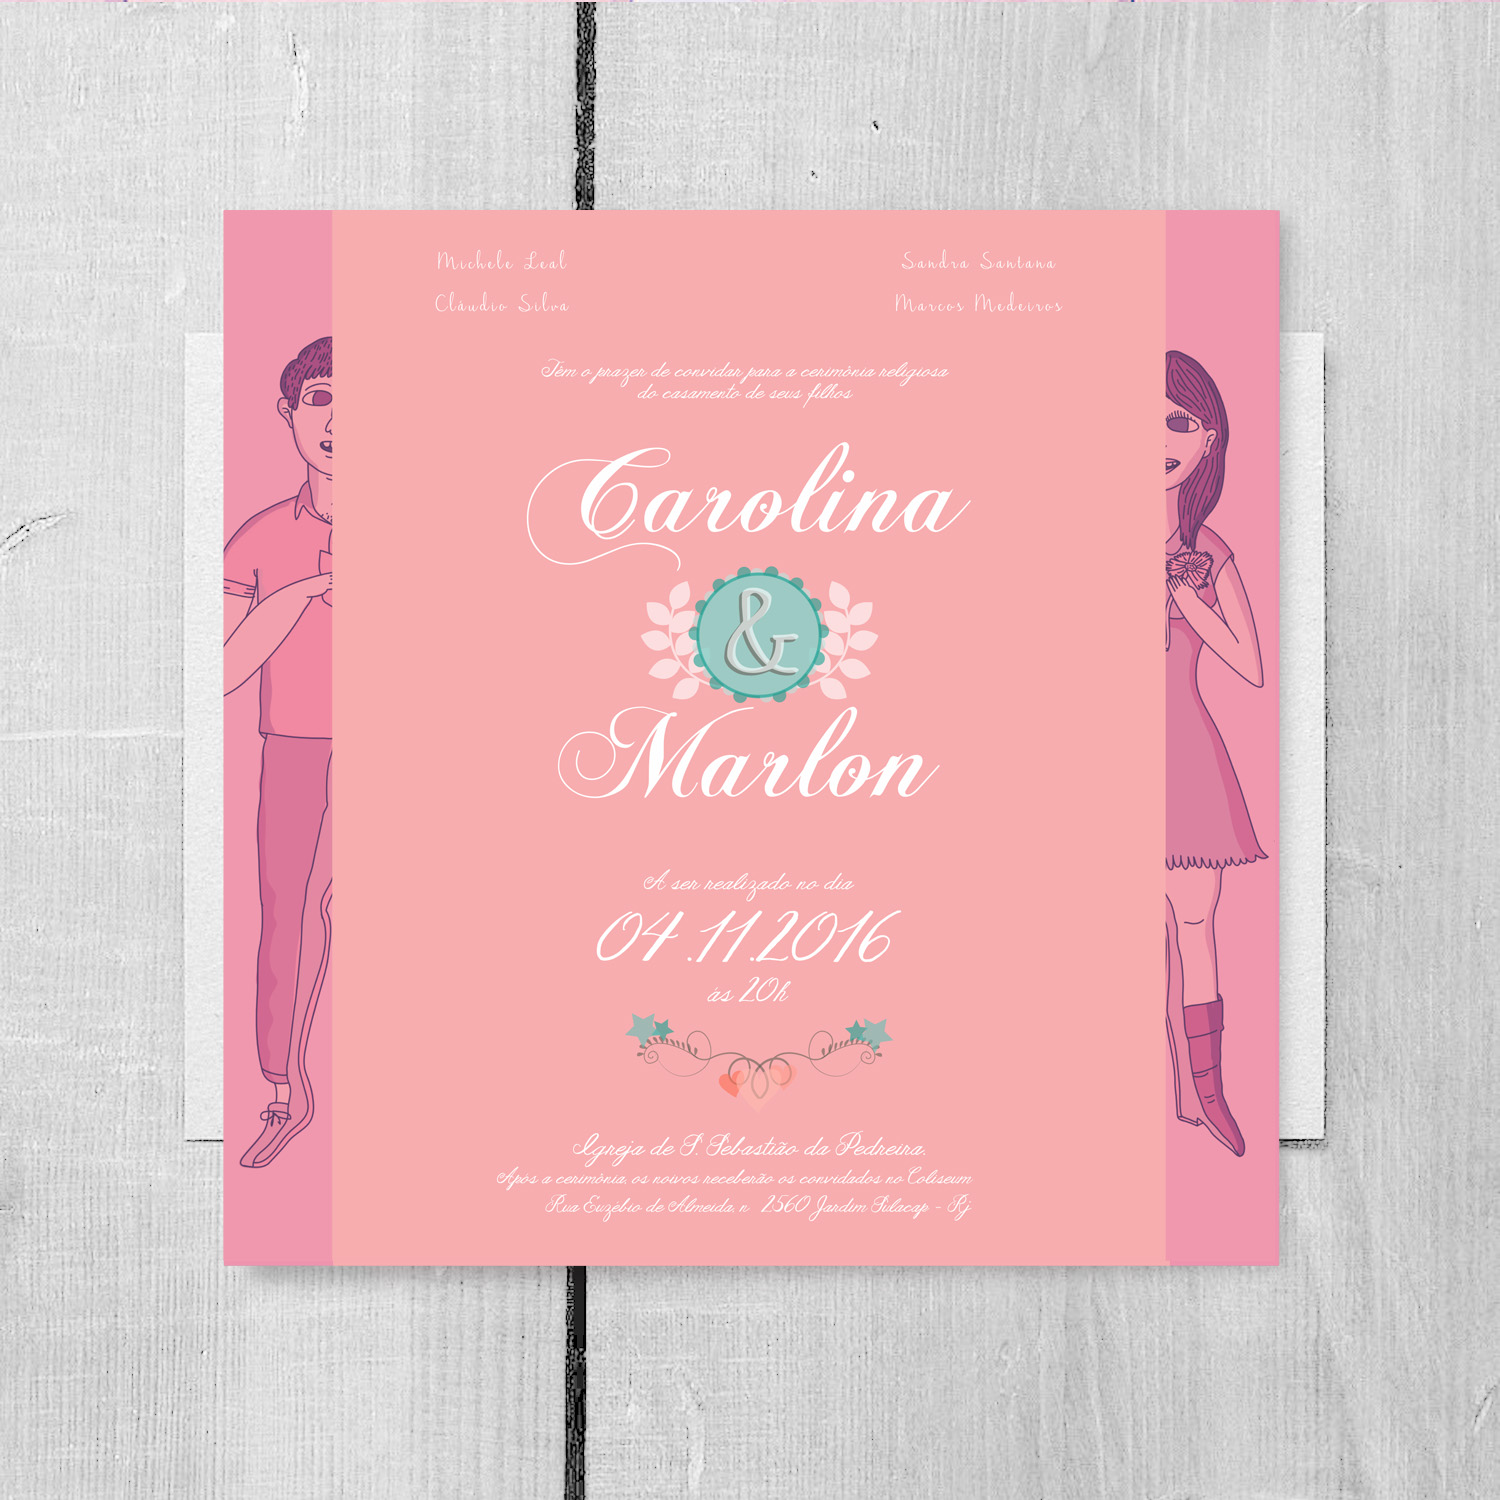 original_confetti-evening-wedding-invitation (1)